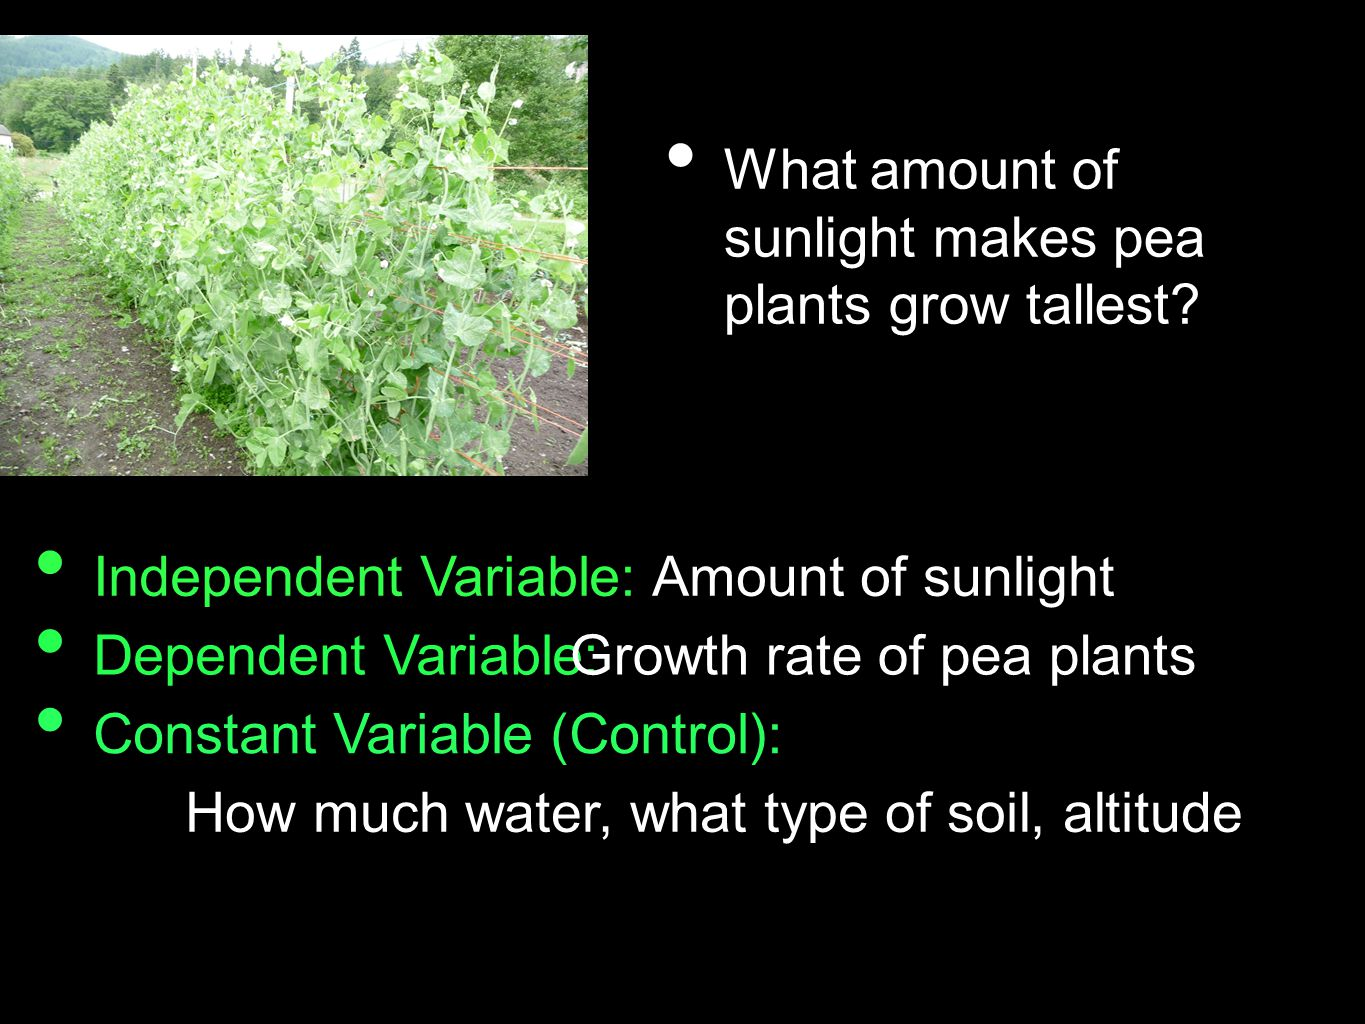 What amount of sunlight makes pea plants grow tallest